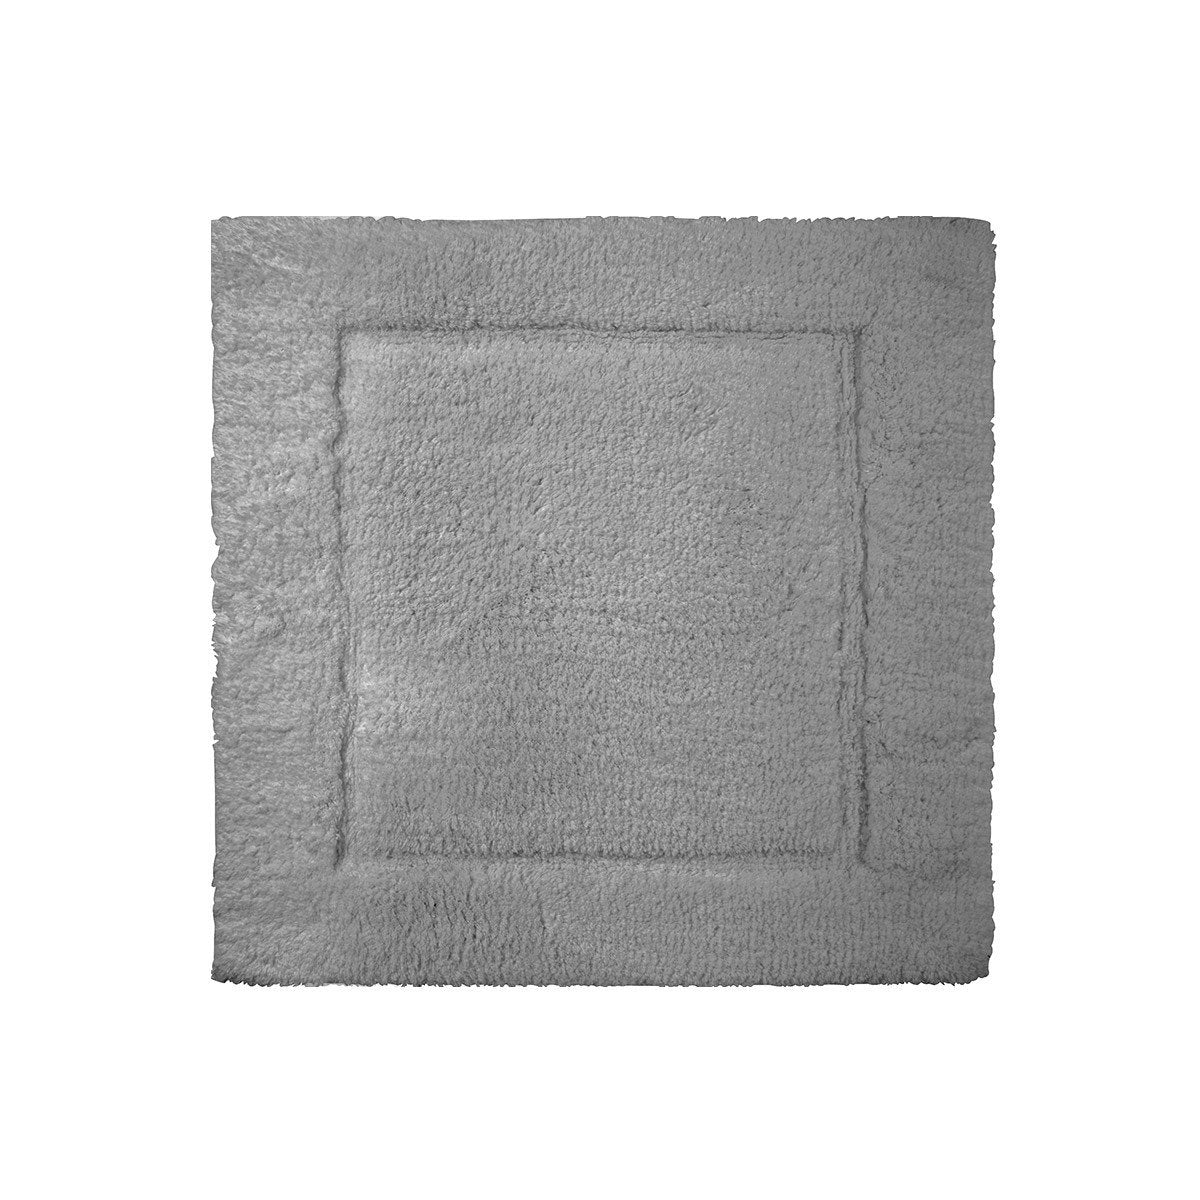 Prestige Platine Bath Rug by Yves Delorme | Fig Linens - Gray, square bath rug, mat, cotton